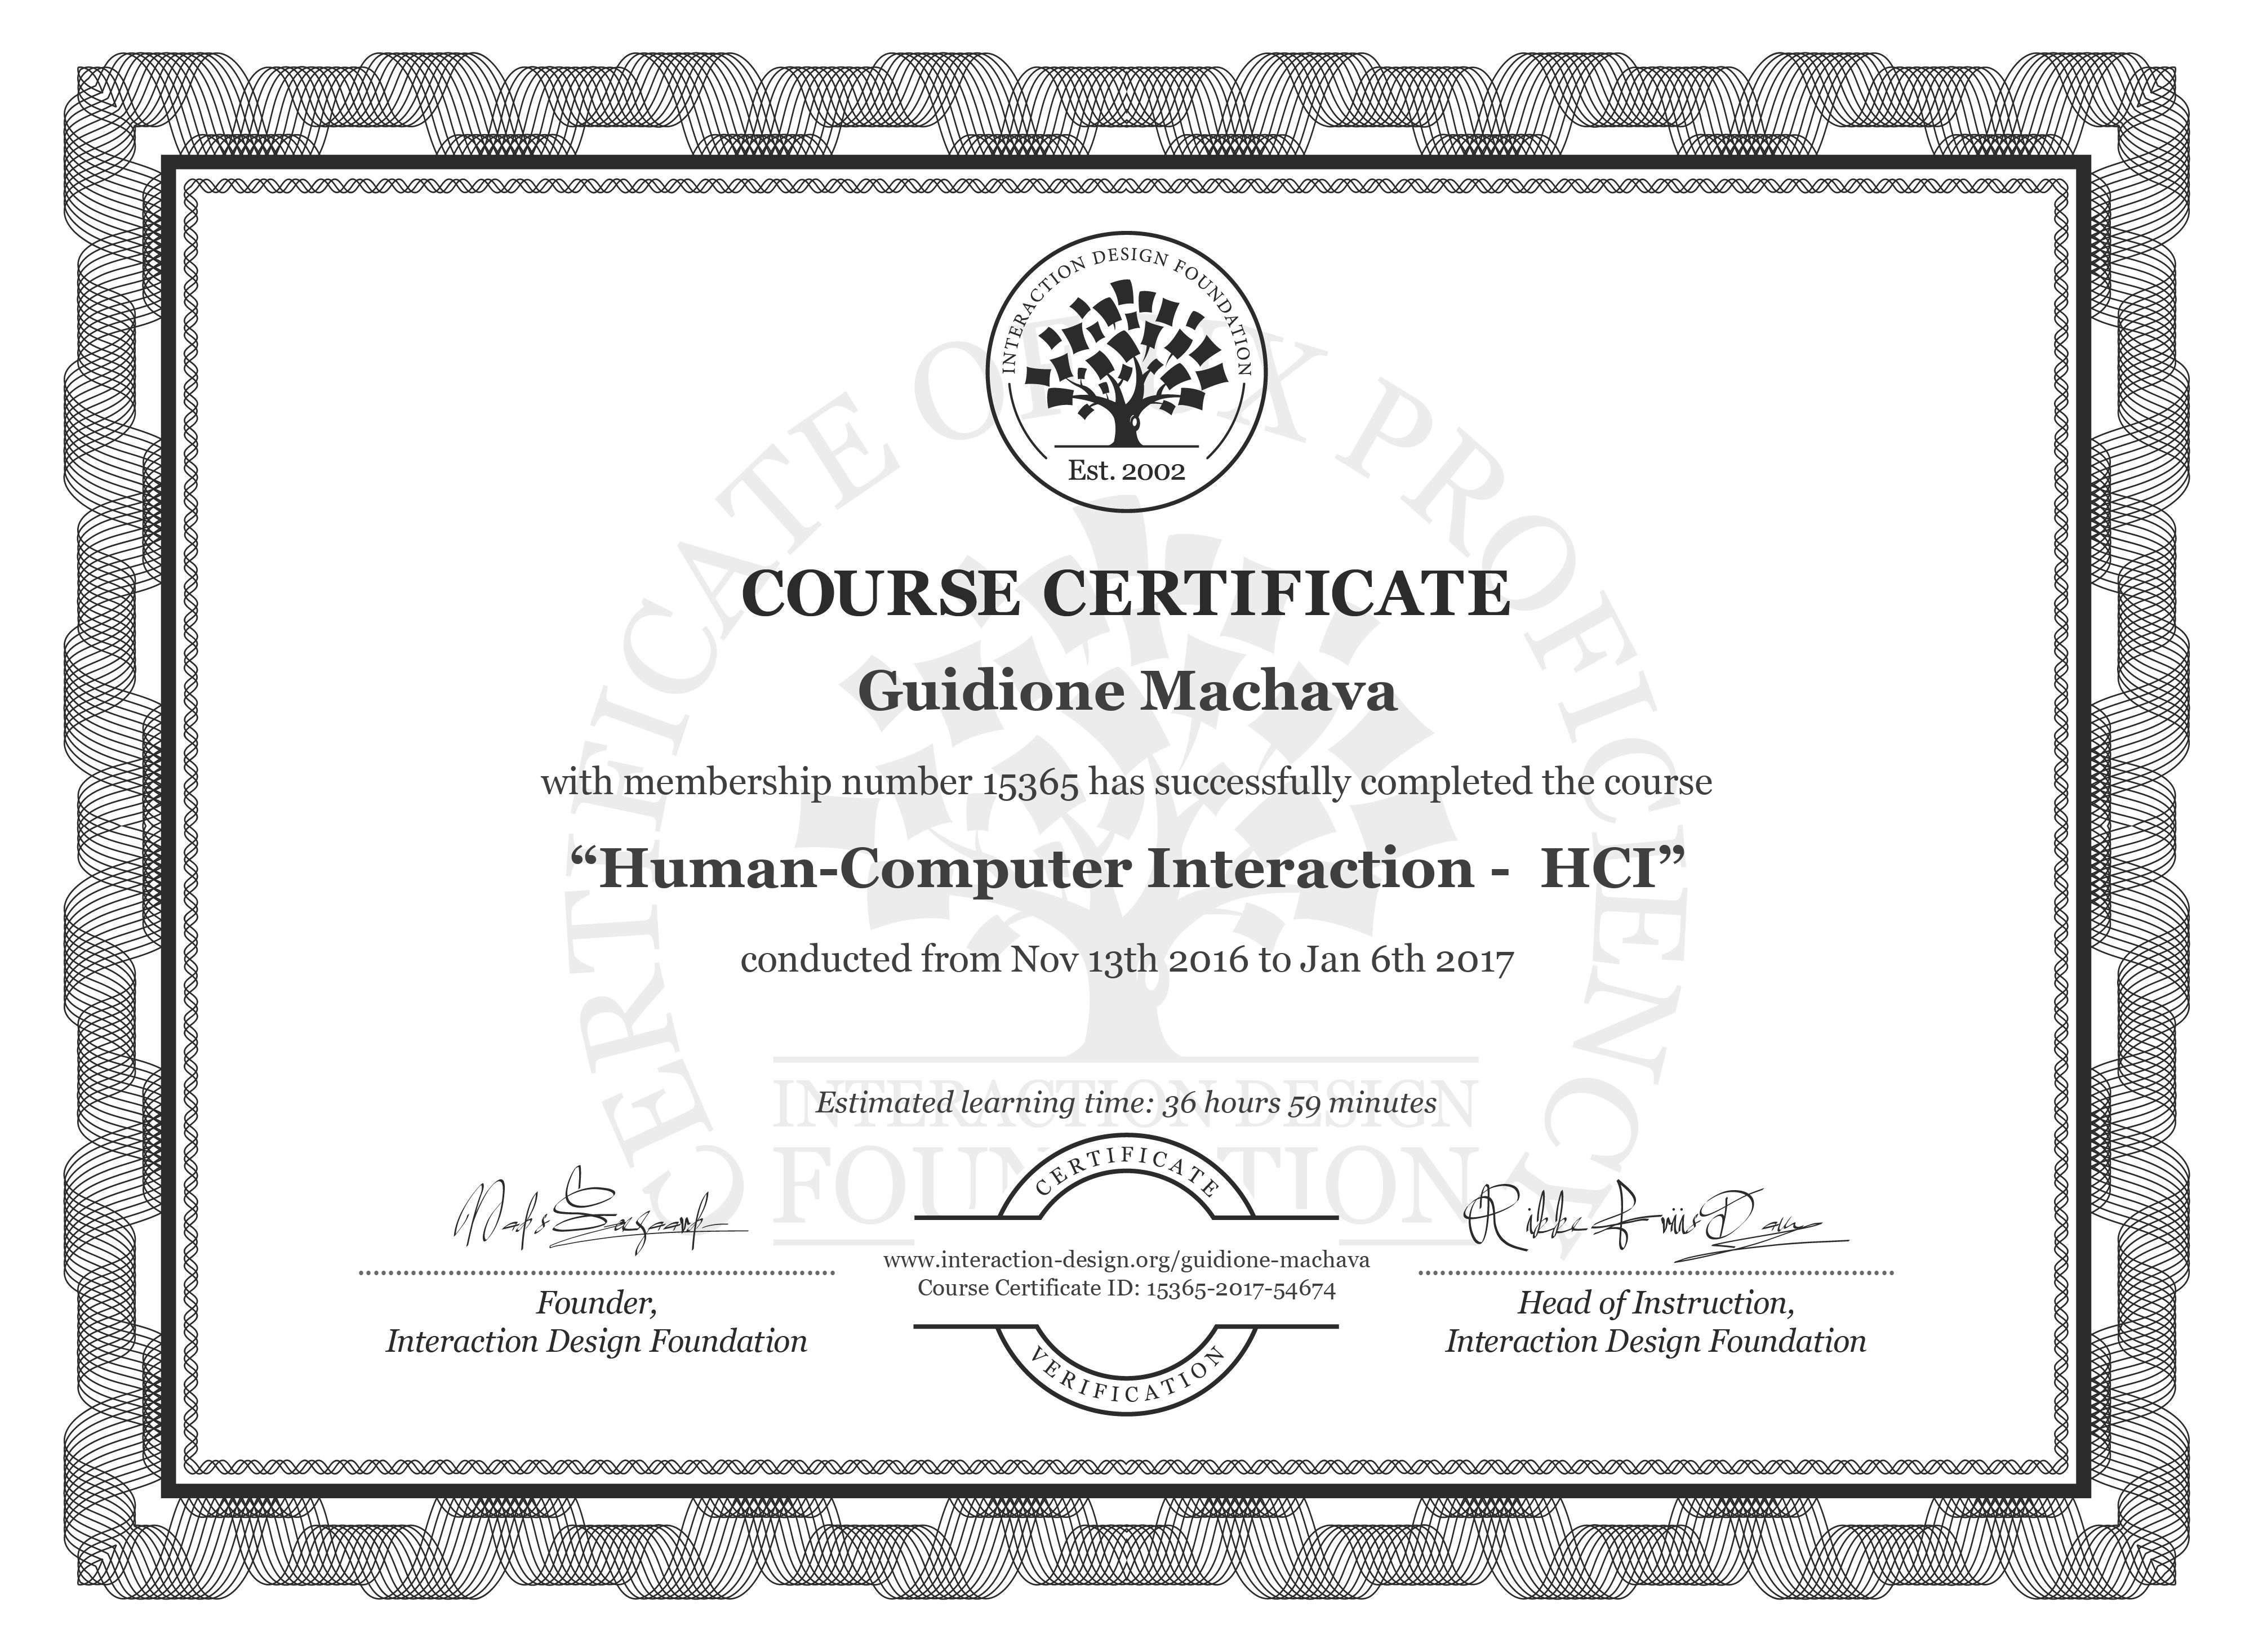 Guidione Machava: Course Certificate - Human-Computer Interaction -  HCI